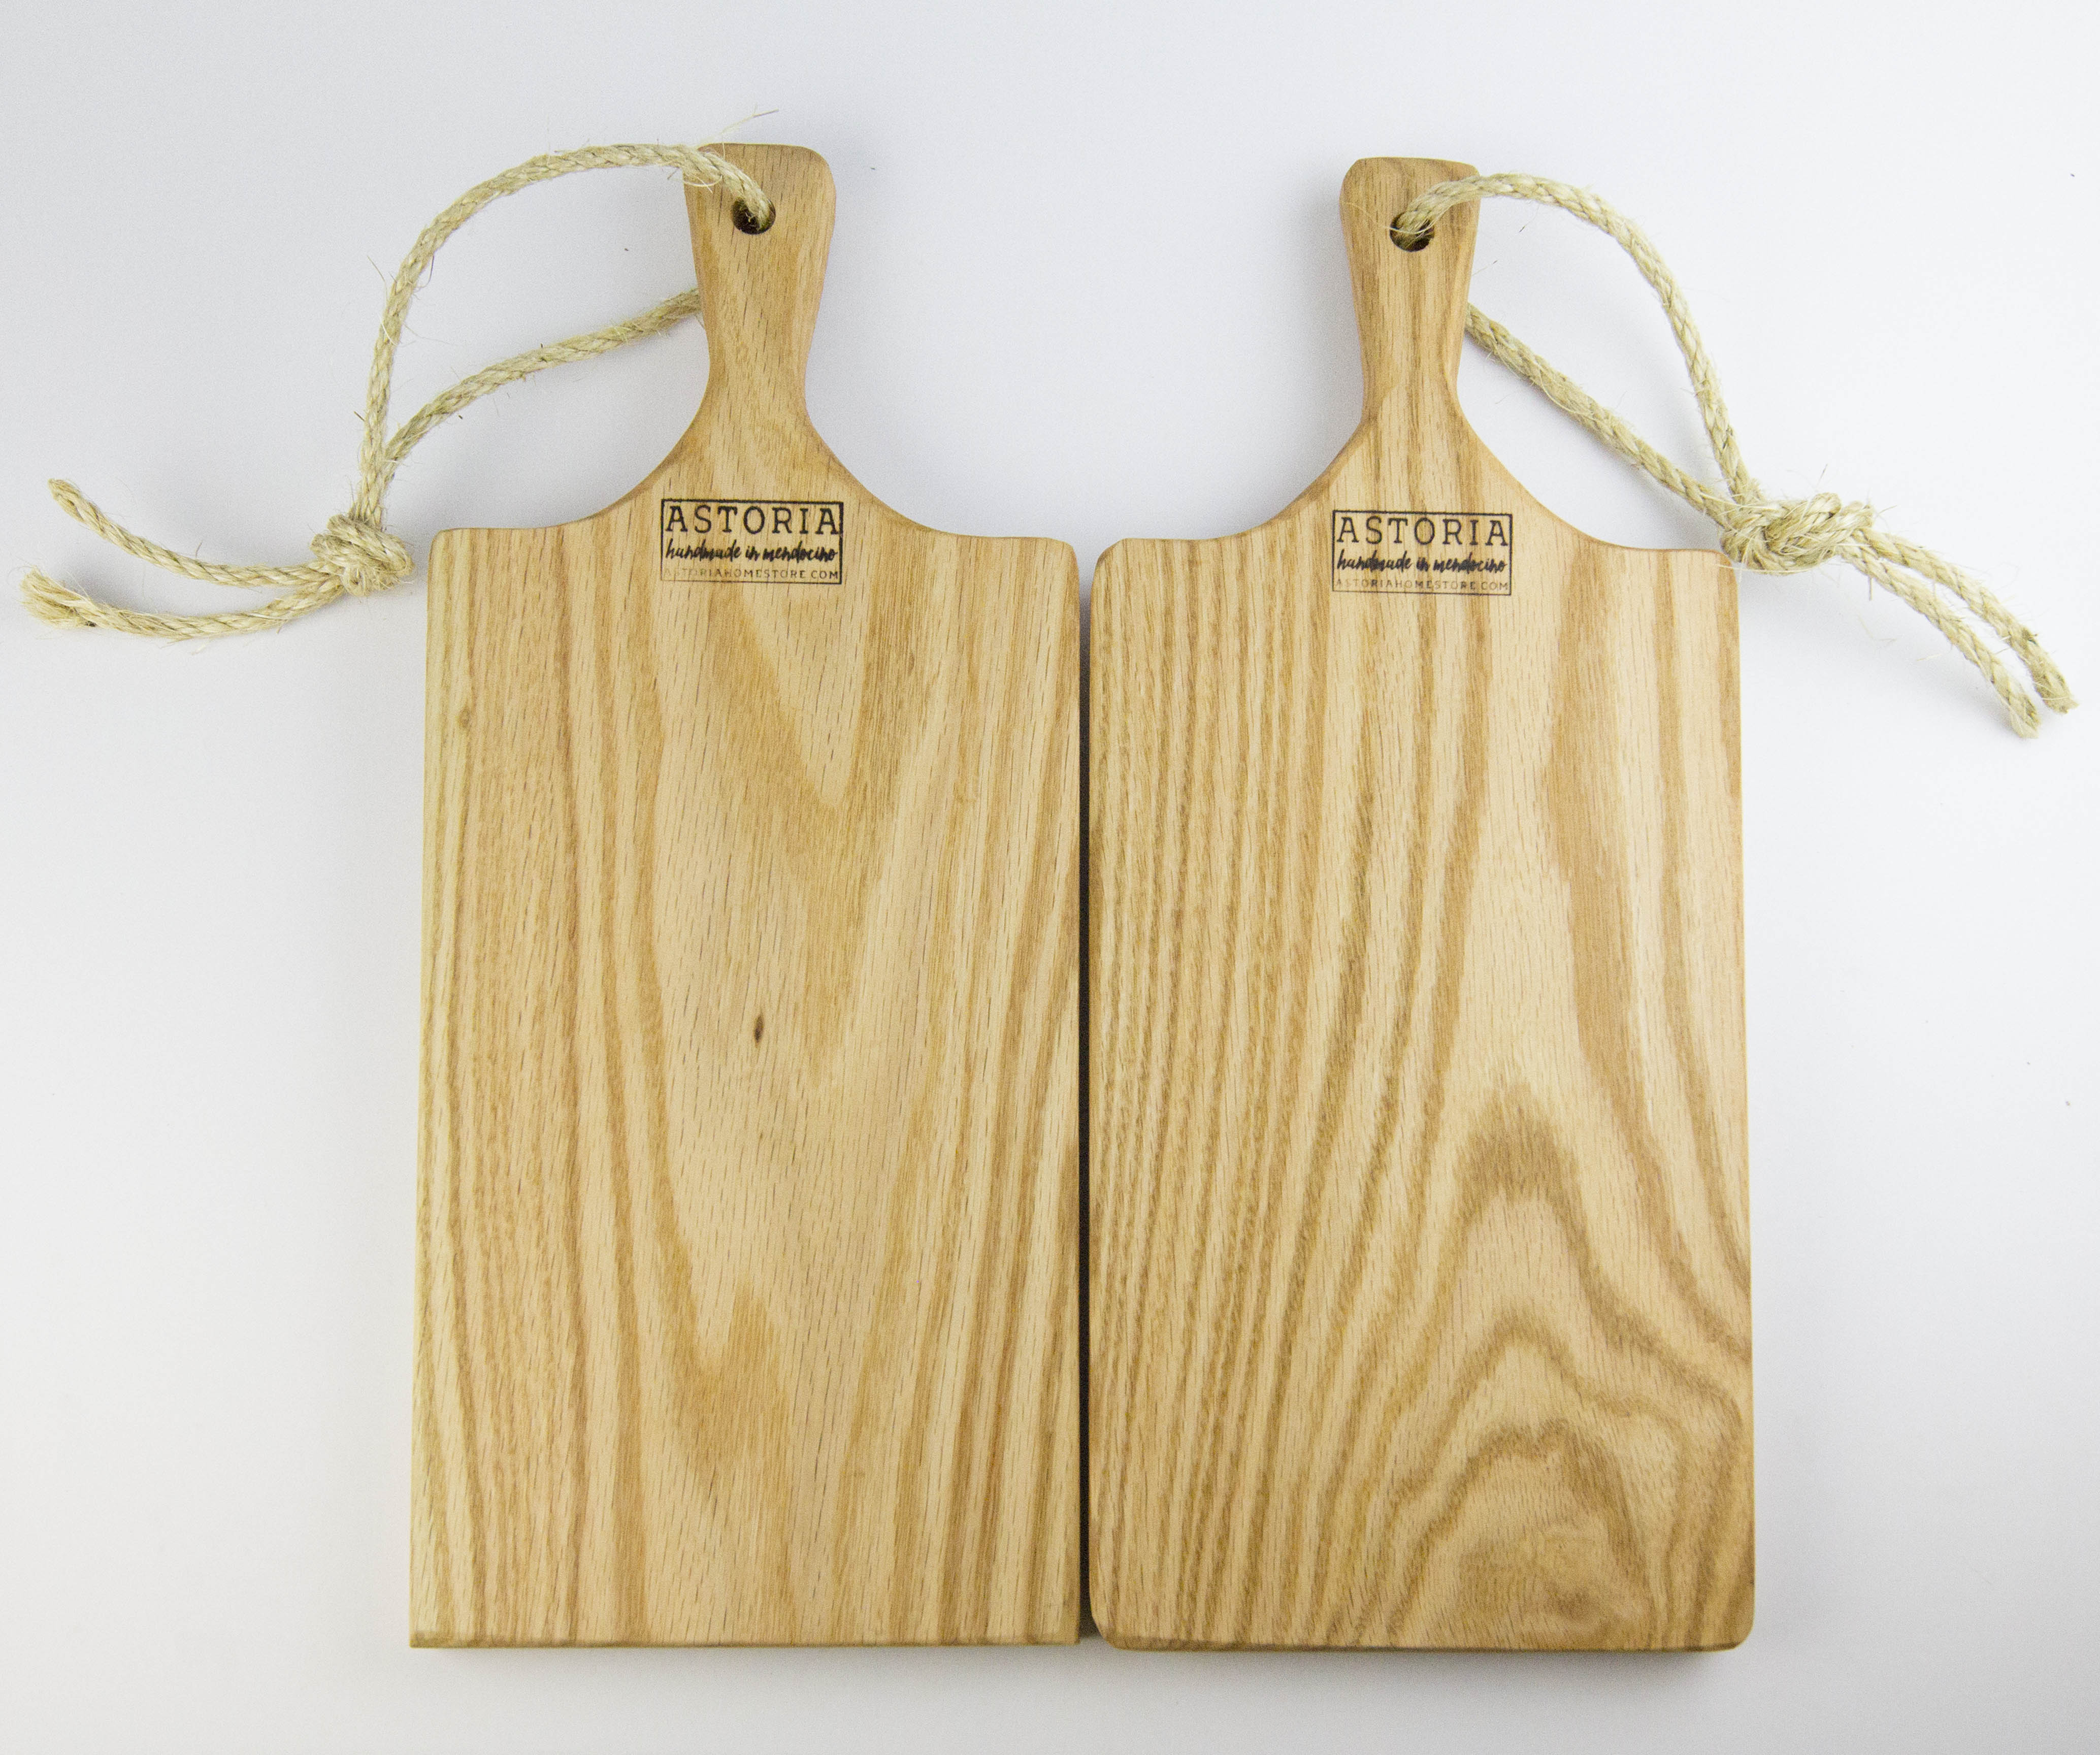 Two Medium Solid Red Oak Charcuterie Serving Board Set Handmade In Mendocino California Combo Deal Save 20 Astoria Home Decor And Gift Shop In Downtown Mendocino